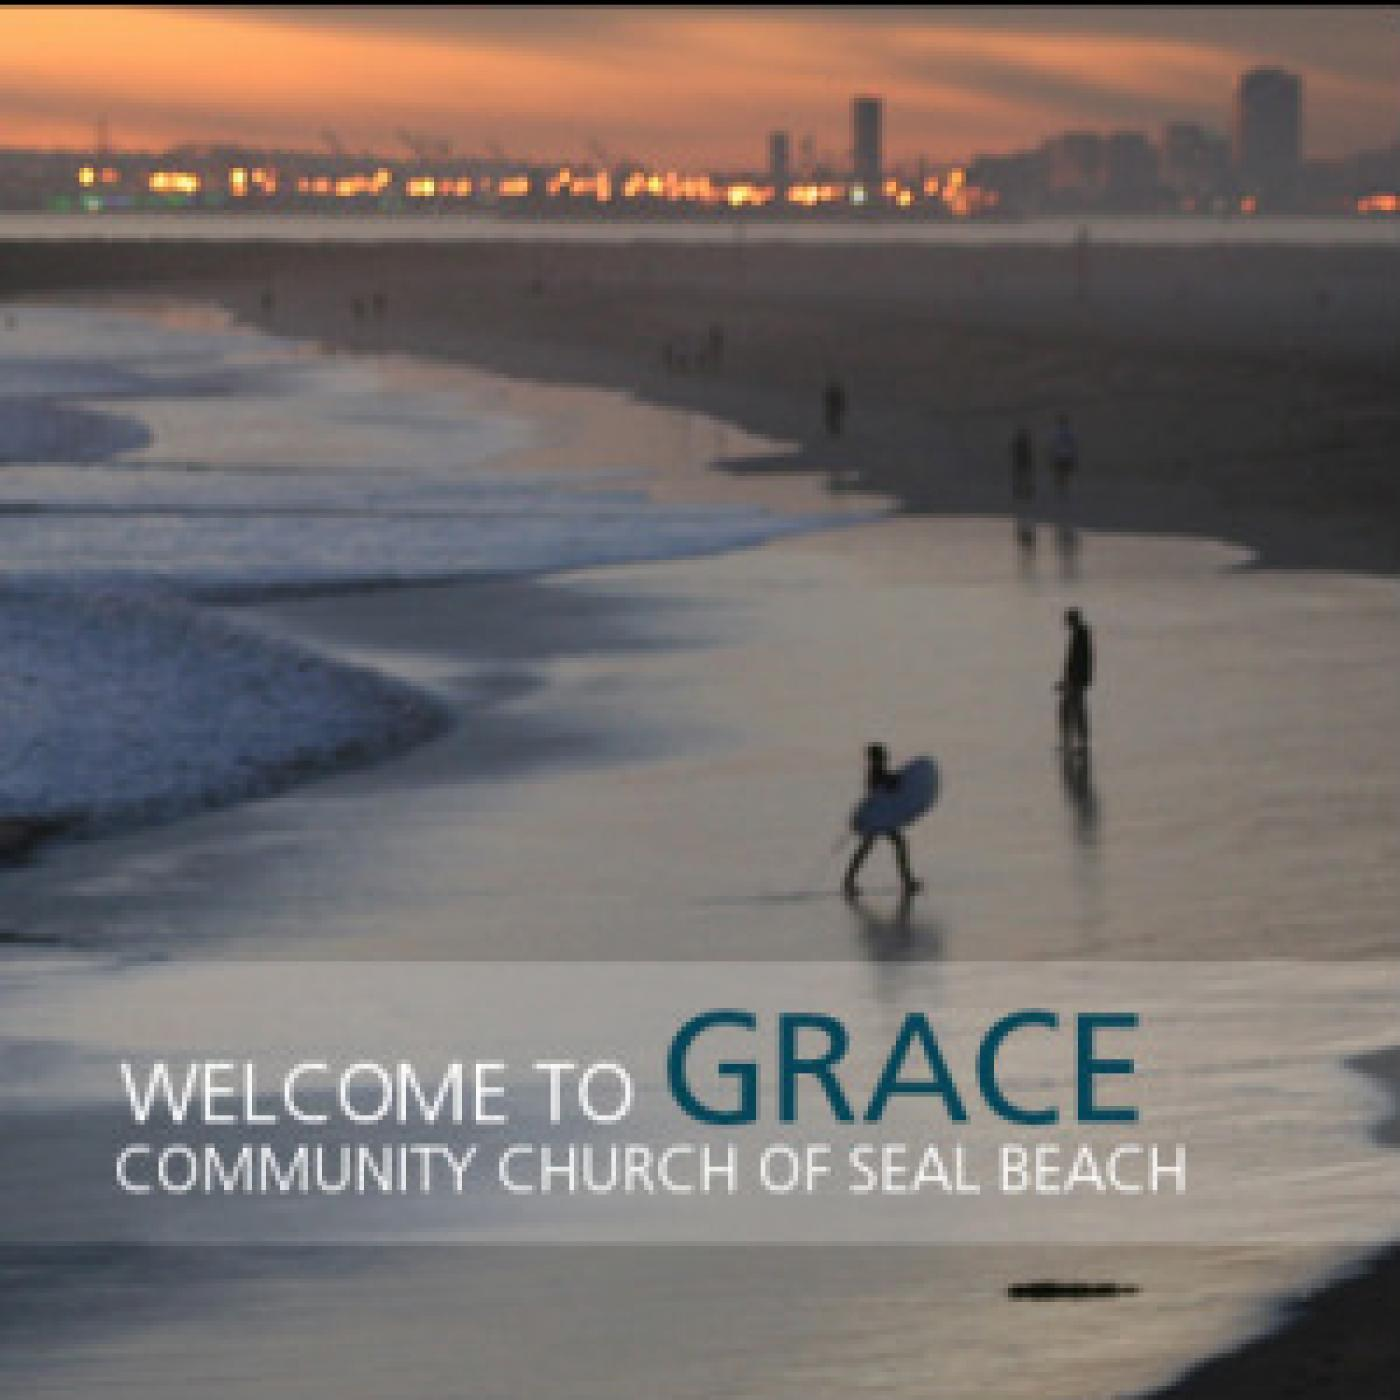 Grace Community Church of Seal Beach